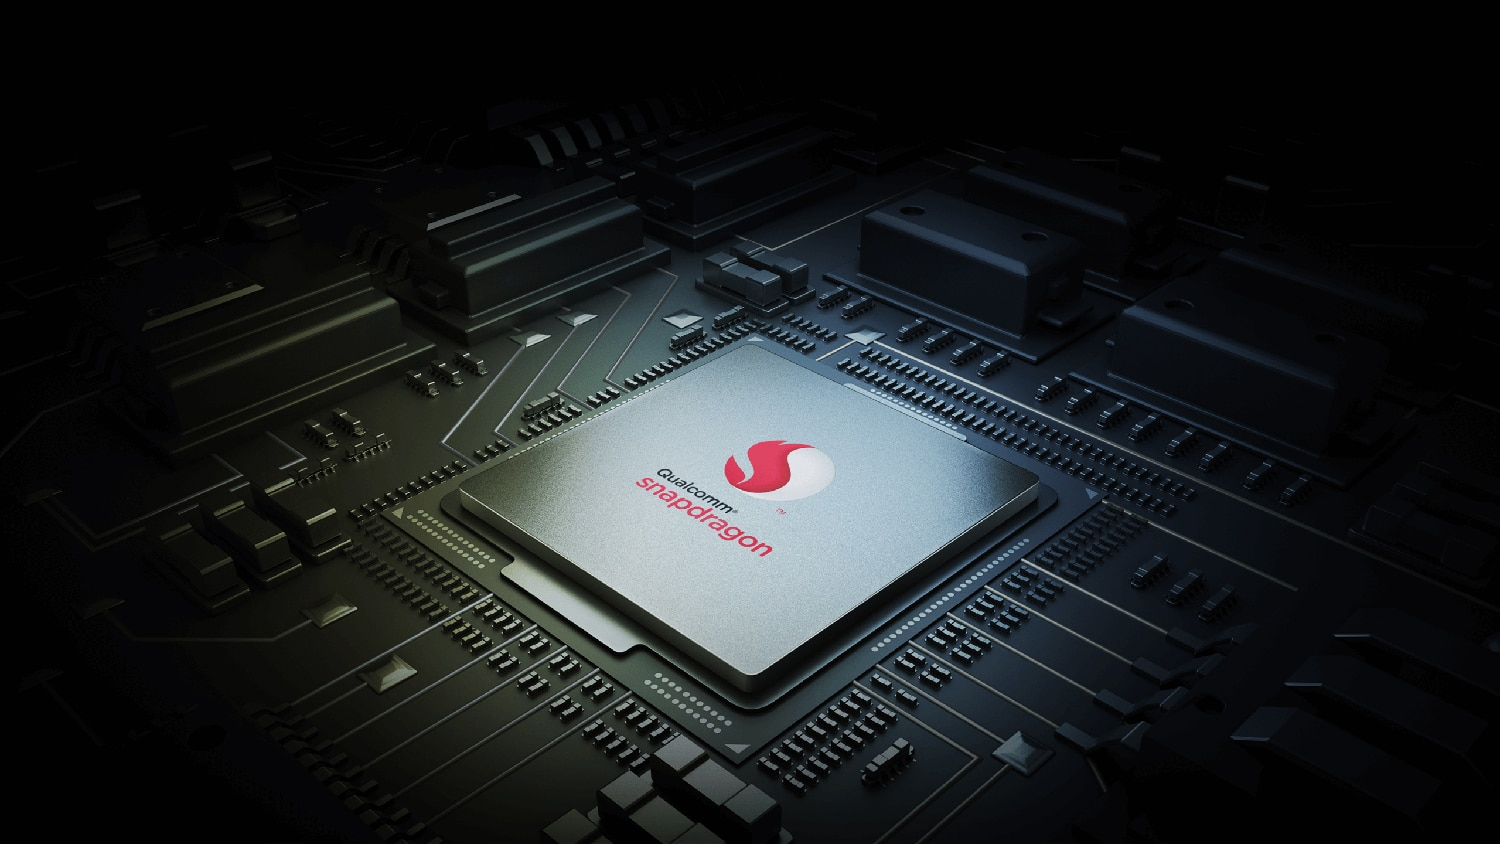 Qualcomm introduces three new midrange Snapdragon chips for non-5G phones